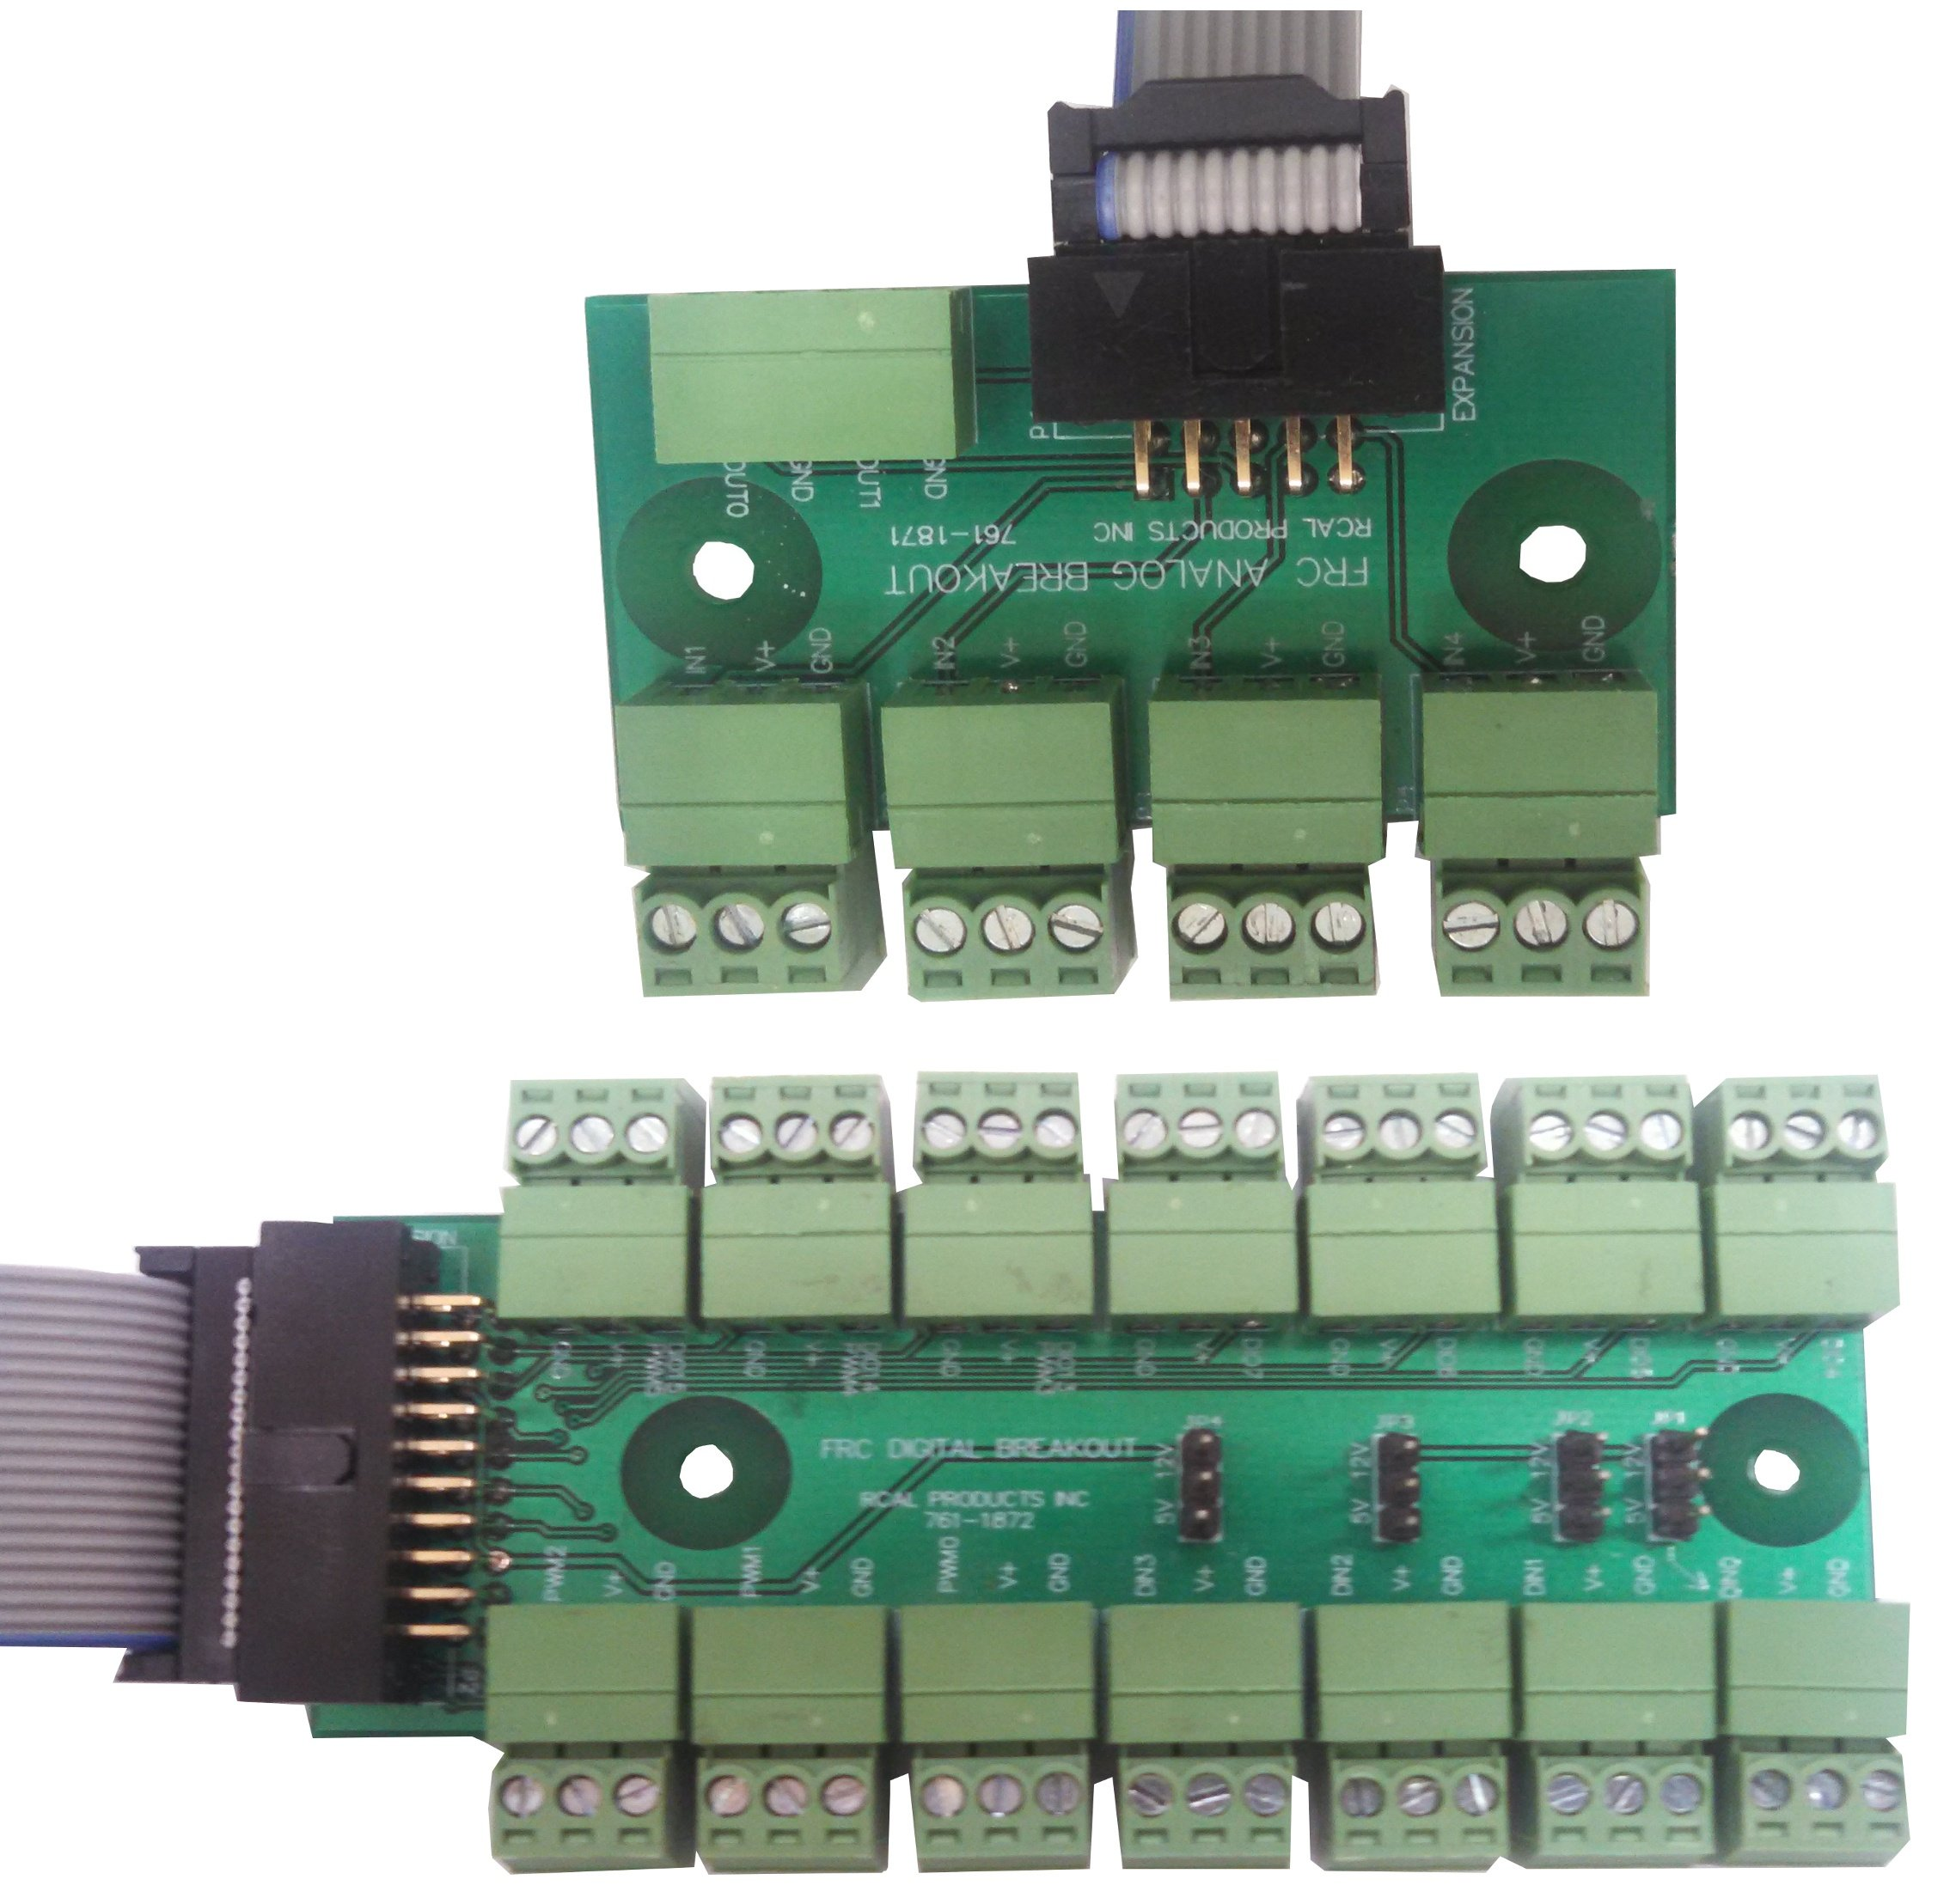 https://0901.nccdn.net/4_2/000/000/086/d2c/breakout-boards-2276x2216.jpg